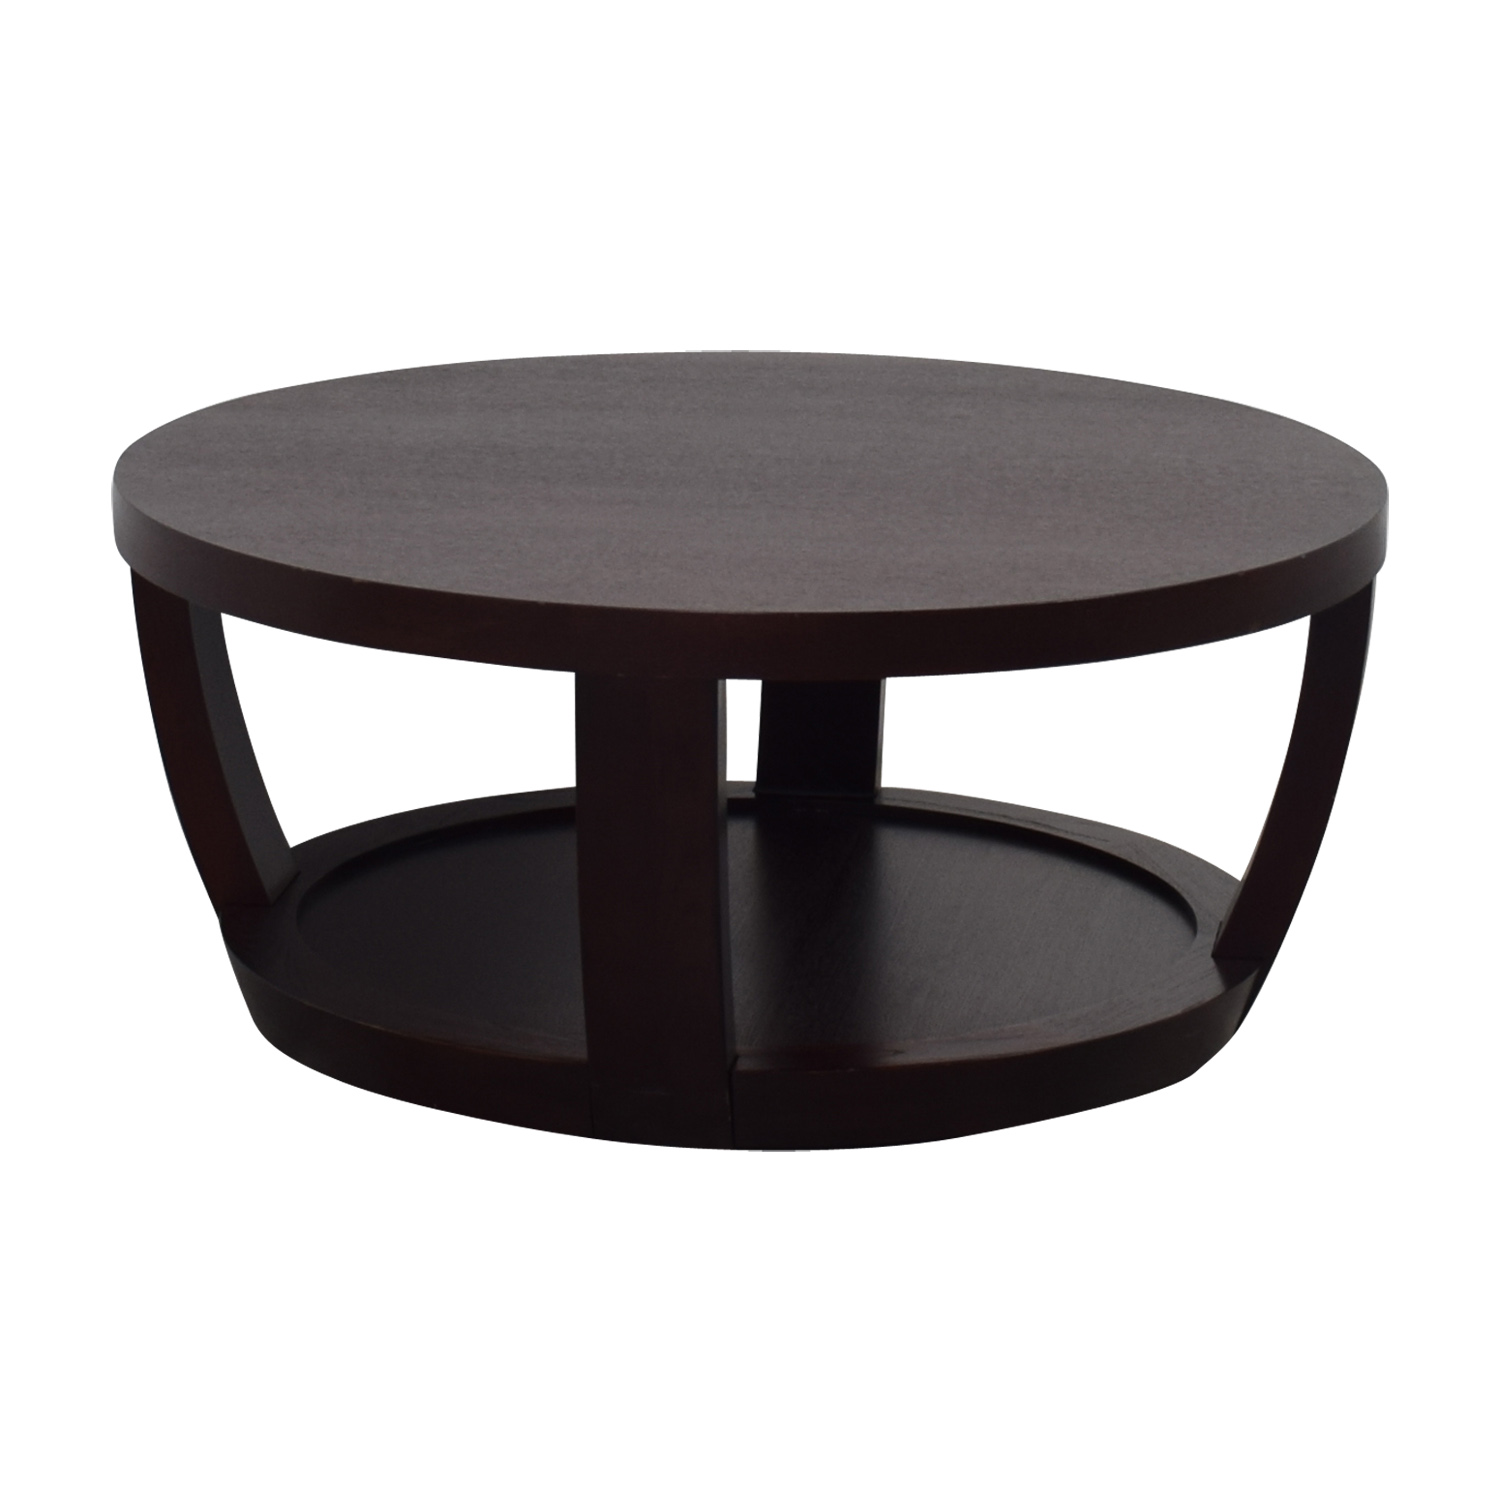 89 Off Macy S Macy S Round Wood Coffee Table Tables